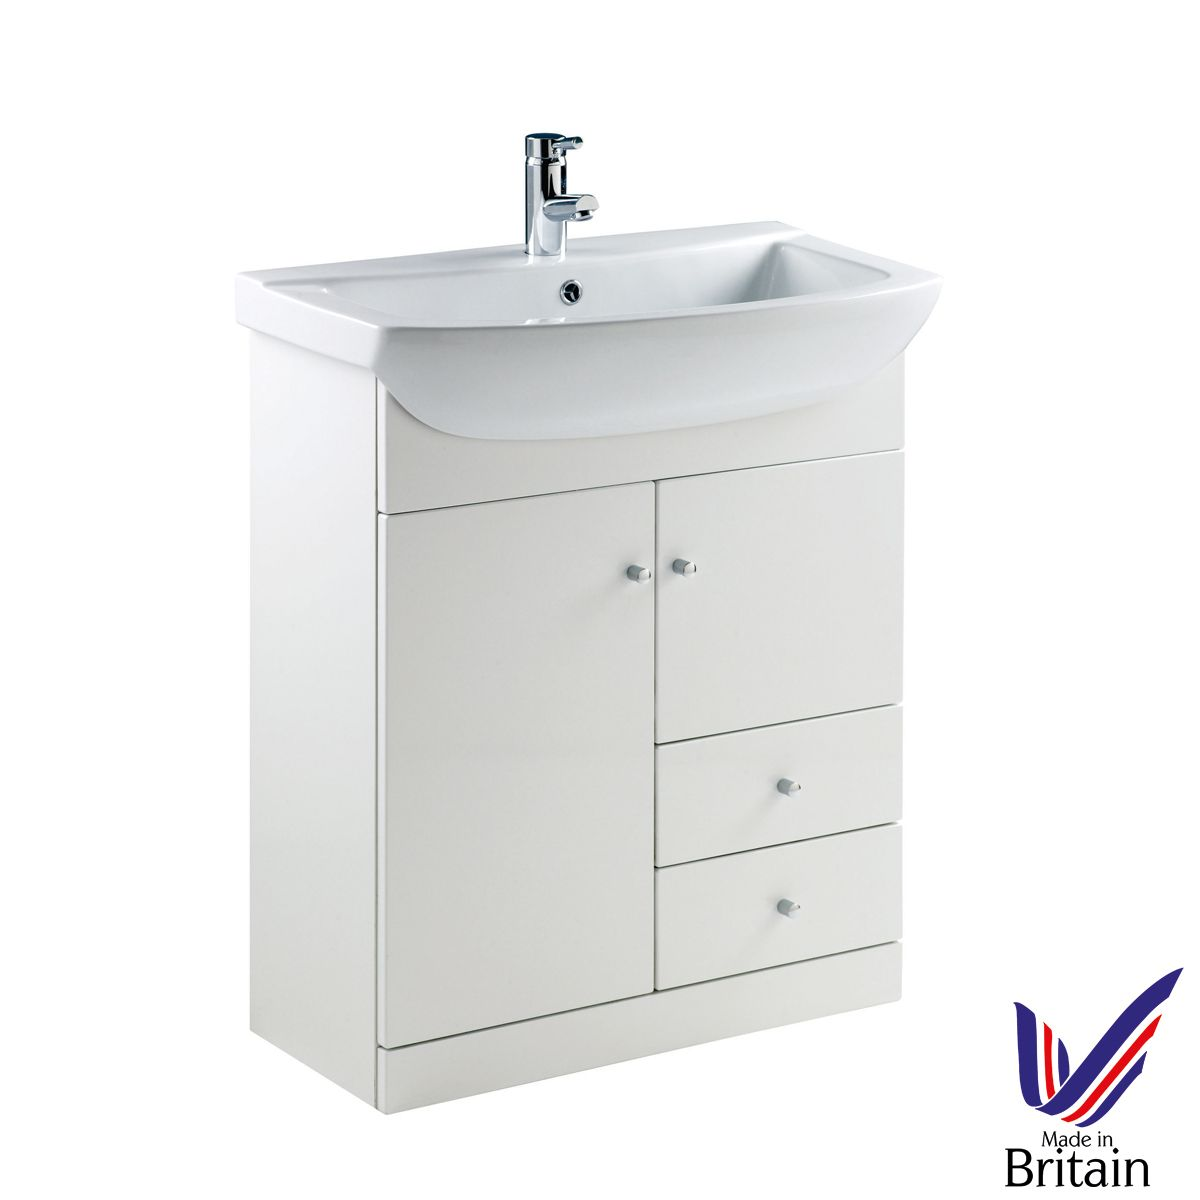 Ikoma White Gloss Vanity Unit with Basin 750mm